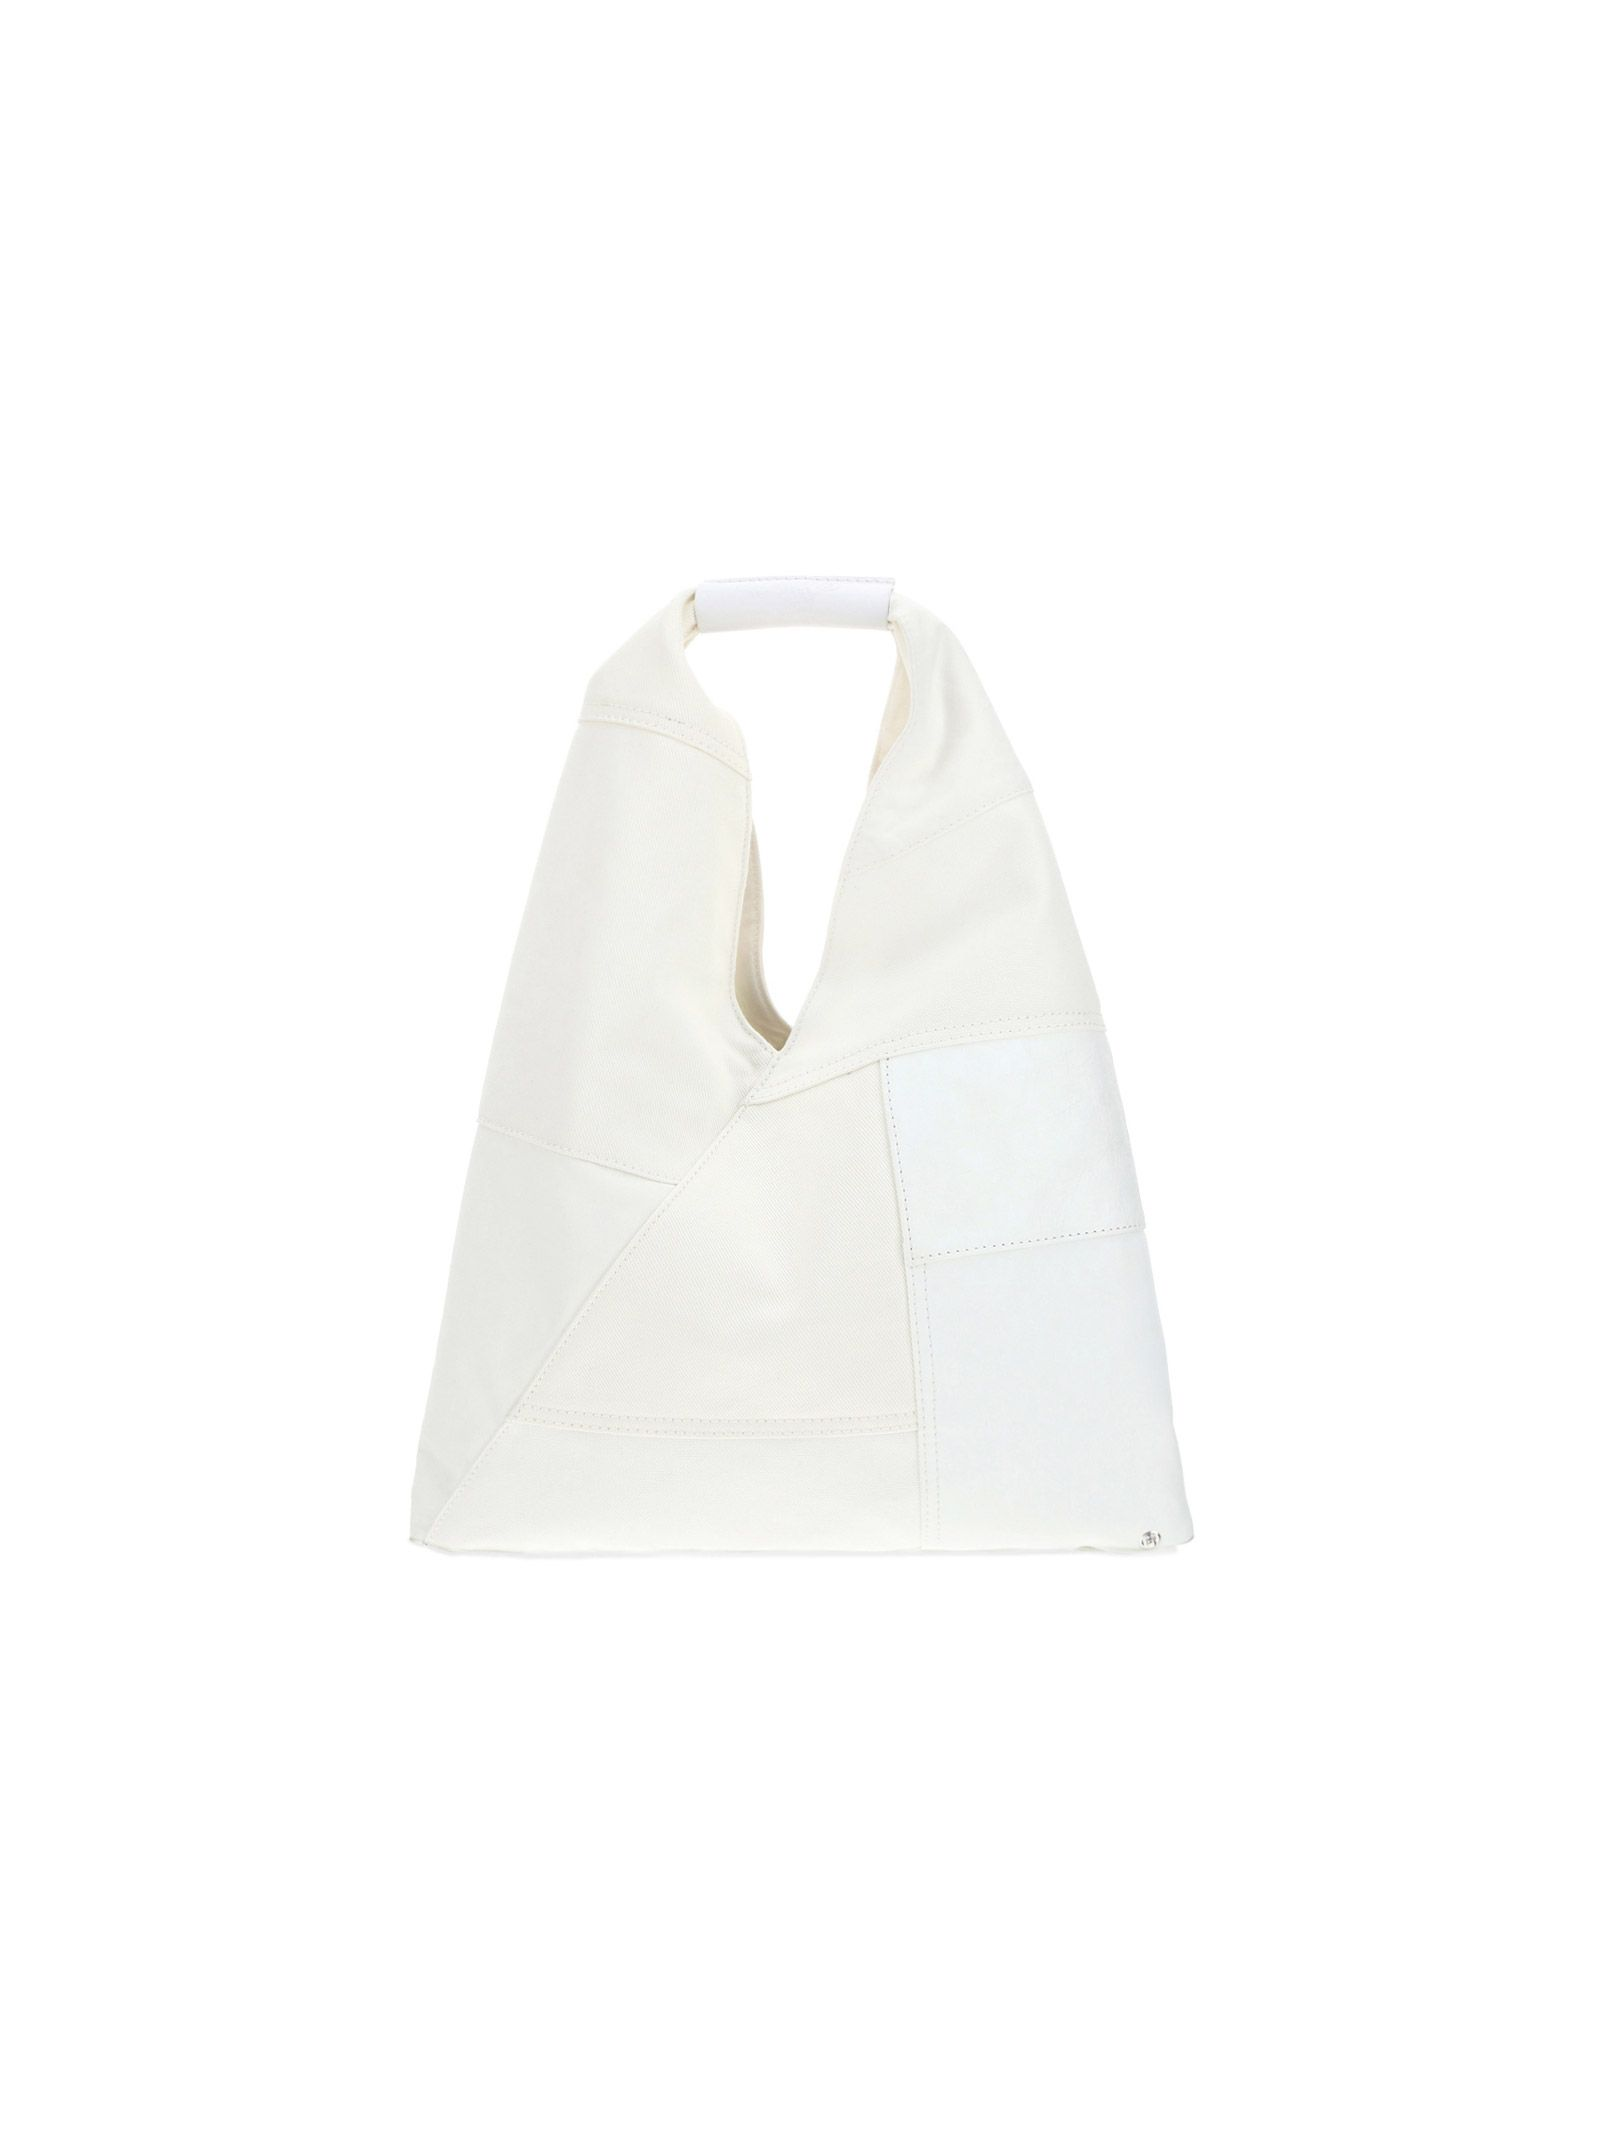 Maison Margiela MAISON MARGIELA WOMEN'S S54WD0043P4159H8700 WHITE OTHER MATERIALS HANDBAG